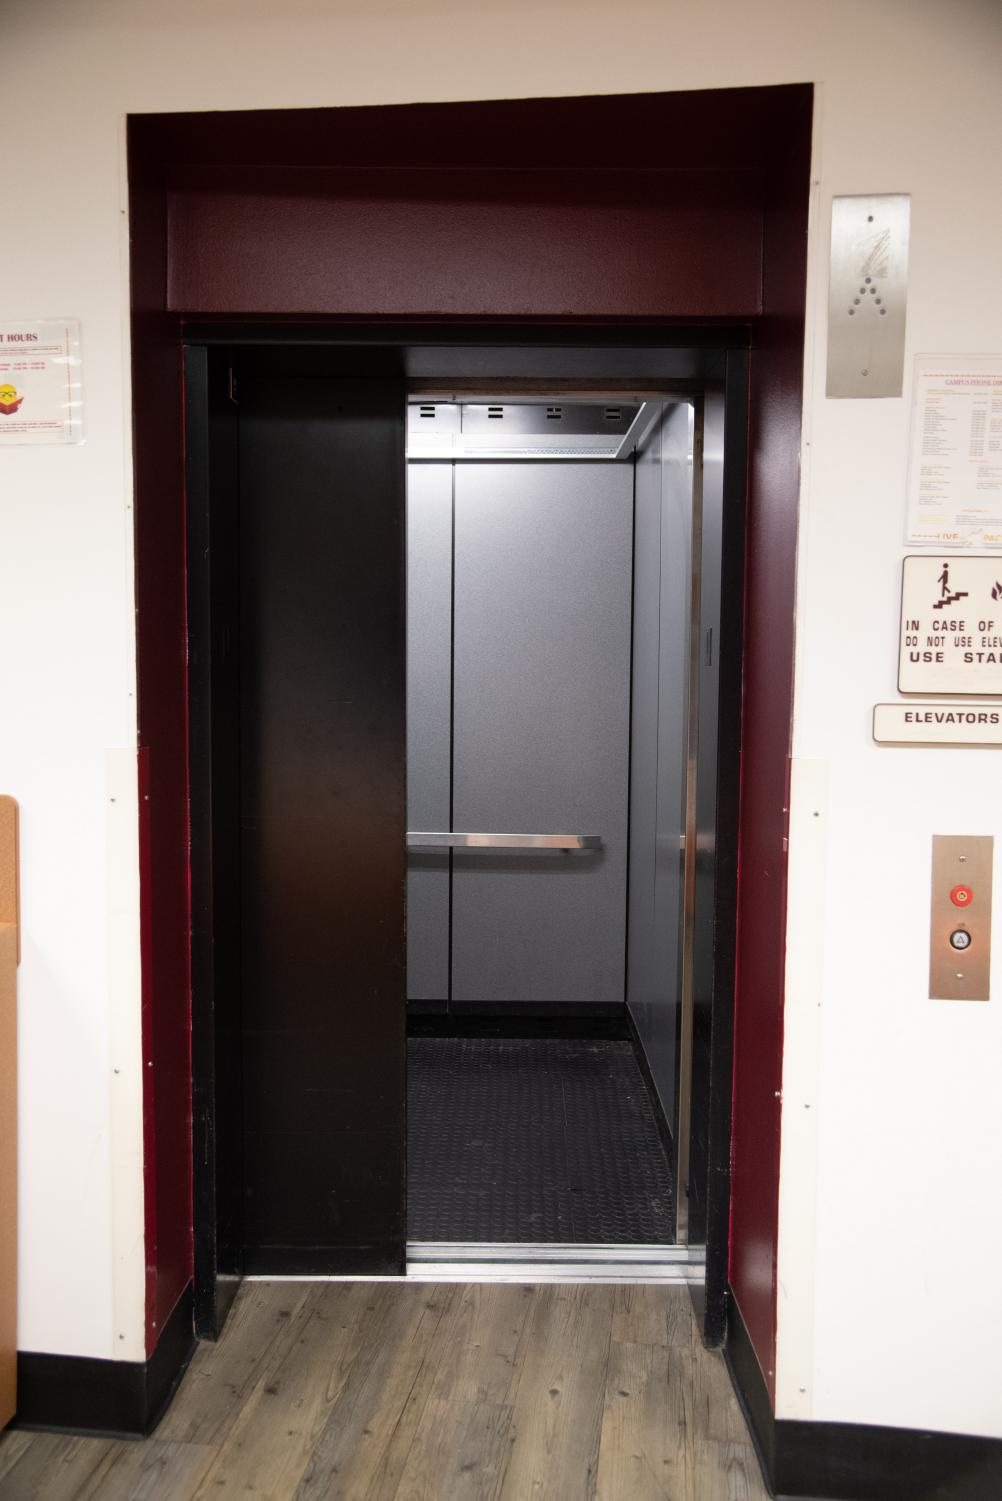 An elevator opens it doors in Carrollton Hall. Loyola elevators broke down 62 times in 2019, but authorities say the university is following state inspection policies. Photo credit: Michael Bauer